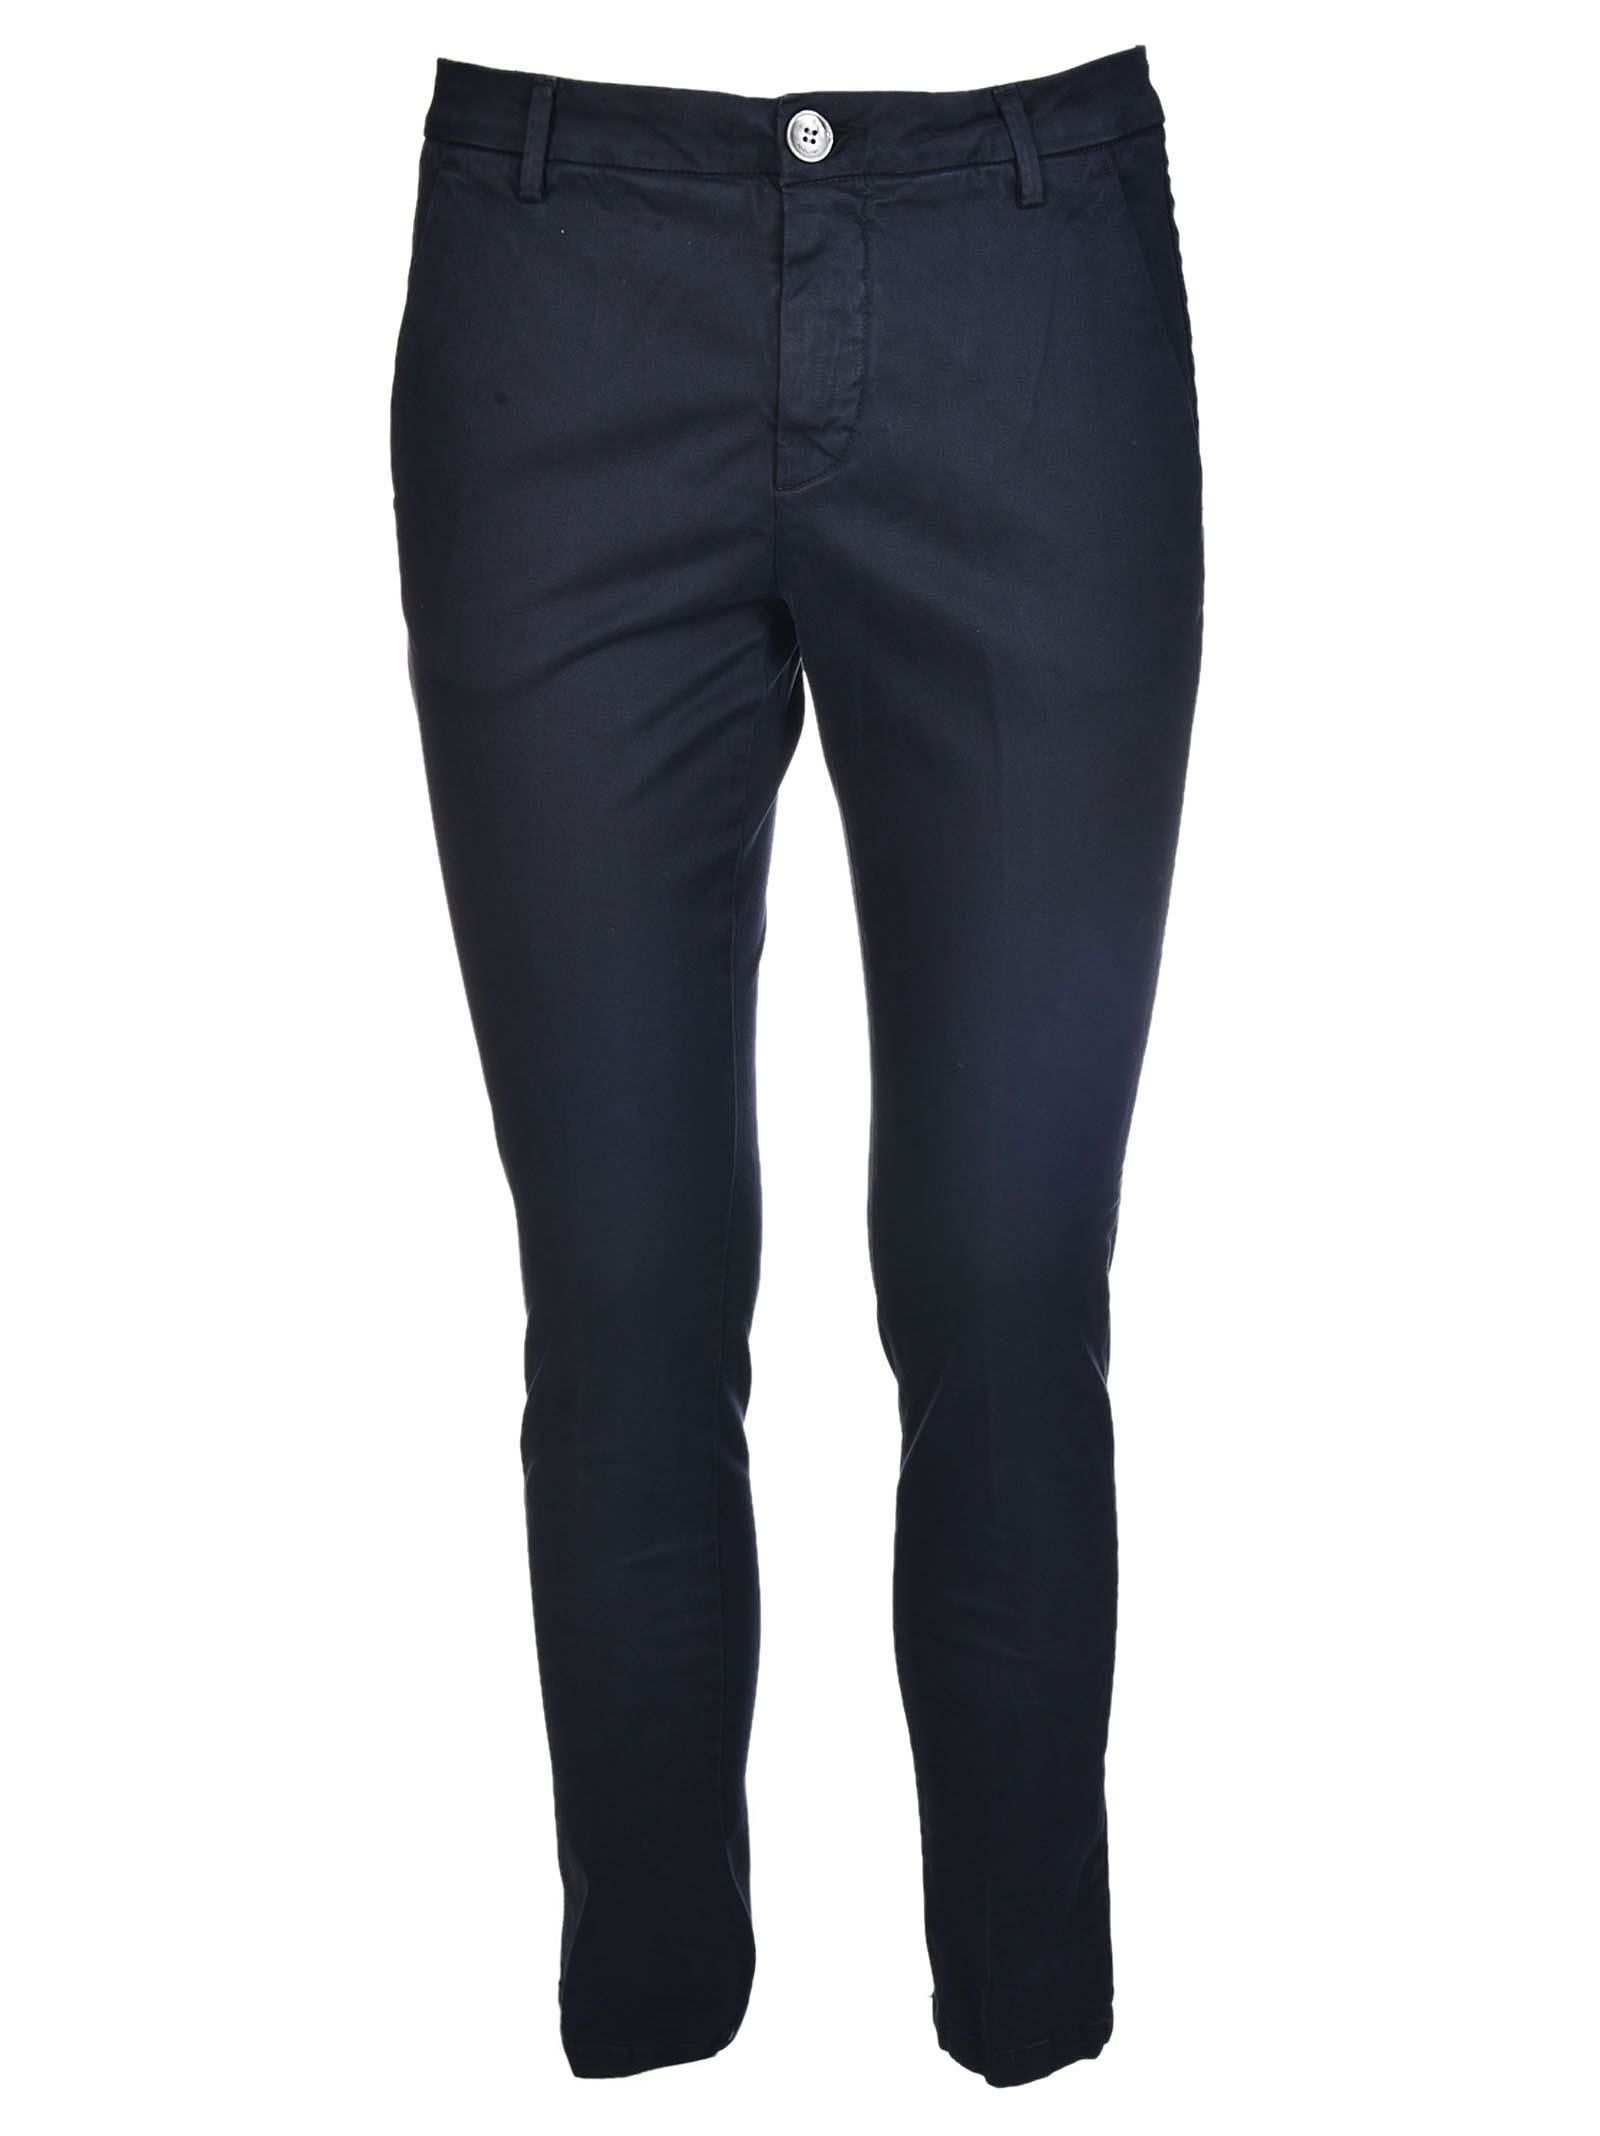 Aglini Edgard Trousers